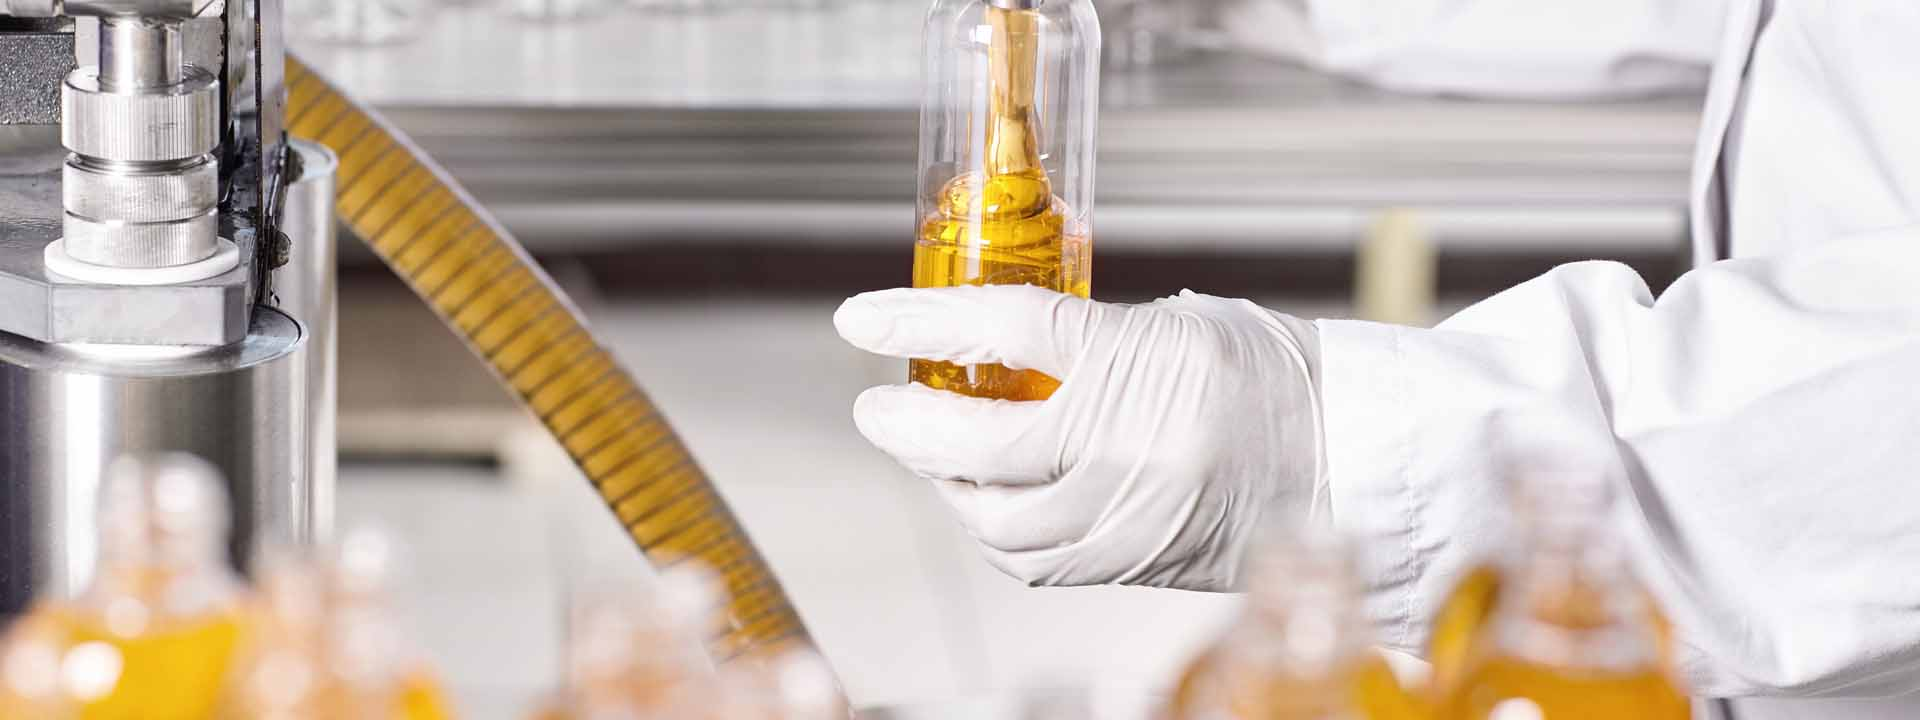 Life Sciences - Cannabis THC/CBD Separation